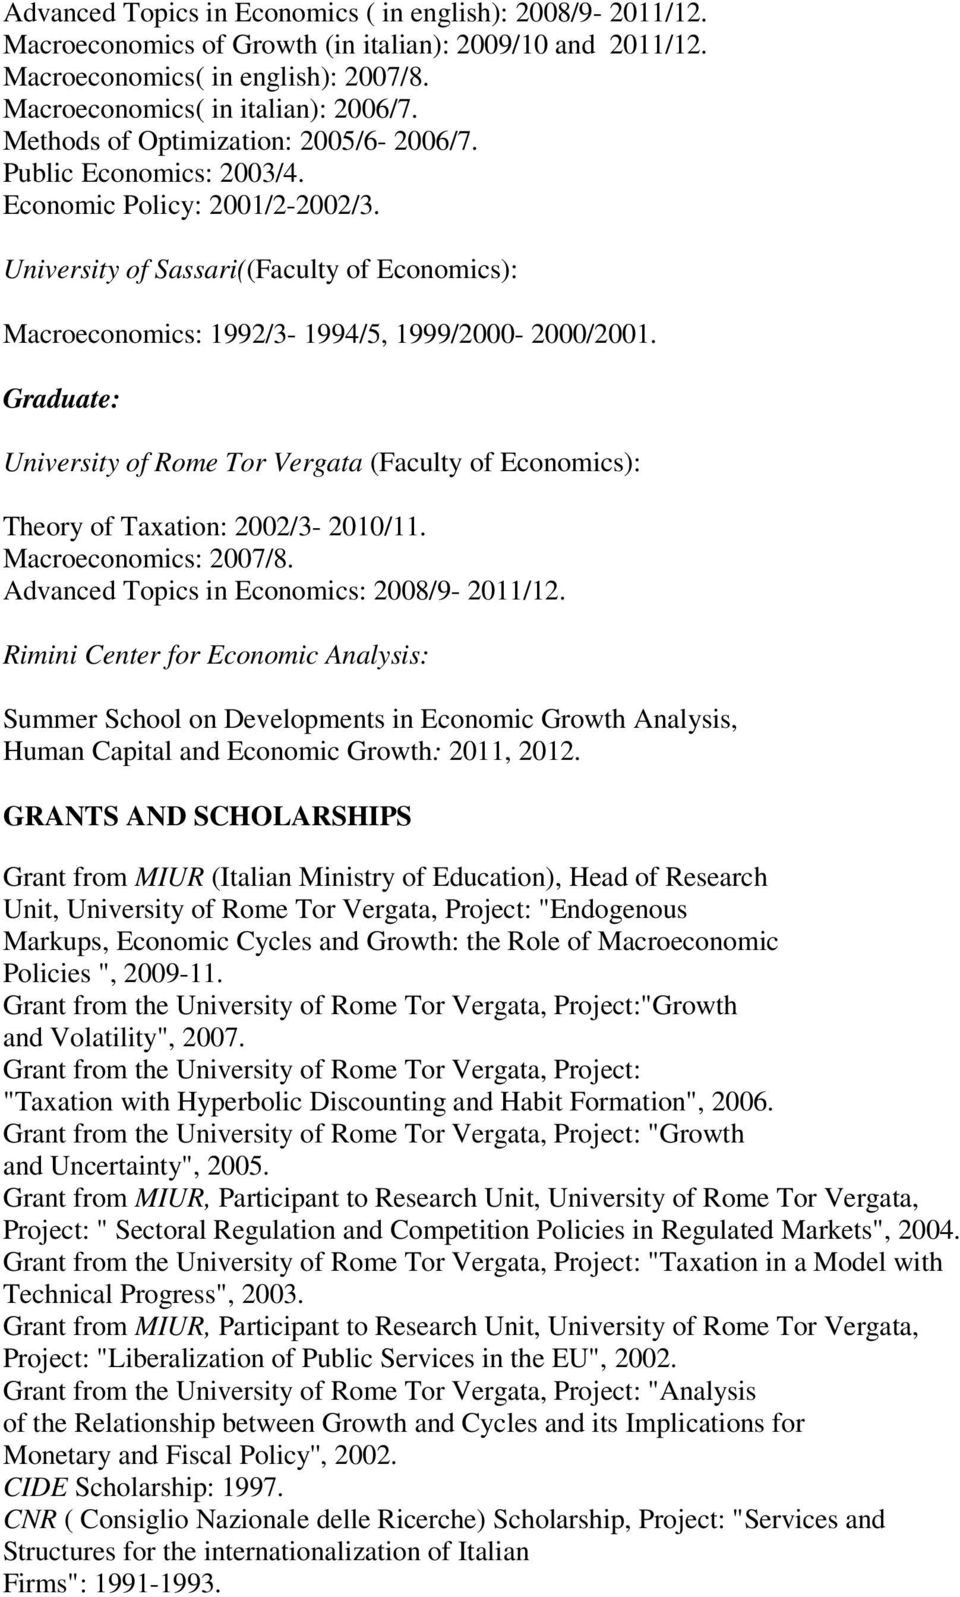 Graduate: University of Rome Tor Vergata (Faculty of Economics): Theory of Taxation: 2002/3-2010/11. Macroeconomics: 2007/8. Advanced Topics in Economics: 2008/9-2011/12.